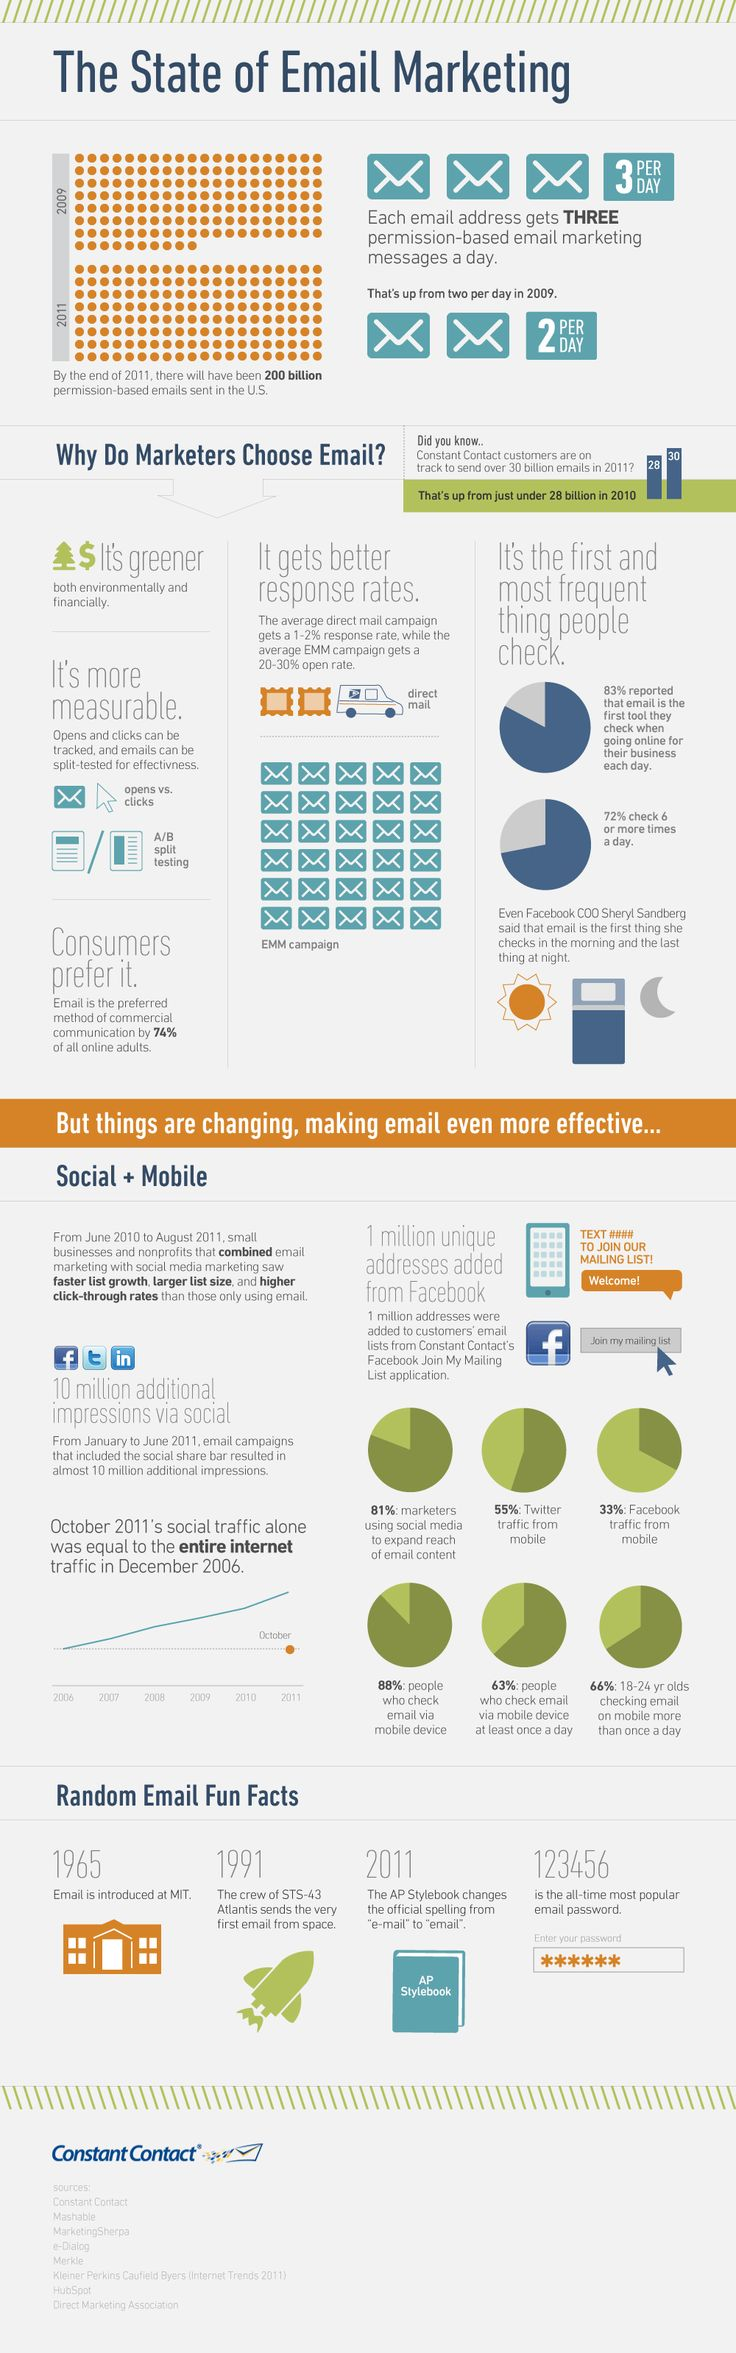 1. The State of Email Marketing  In an age where social media is all the rage, it can be easy to forget just how effective email marketing is. Constant Contact offered a reminder in the form of an infographic. Next time someone asks why you're so interested in email, you can point here.